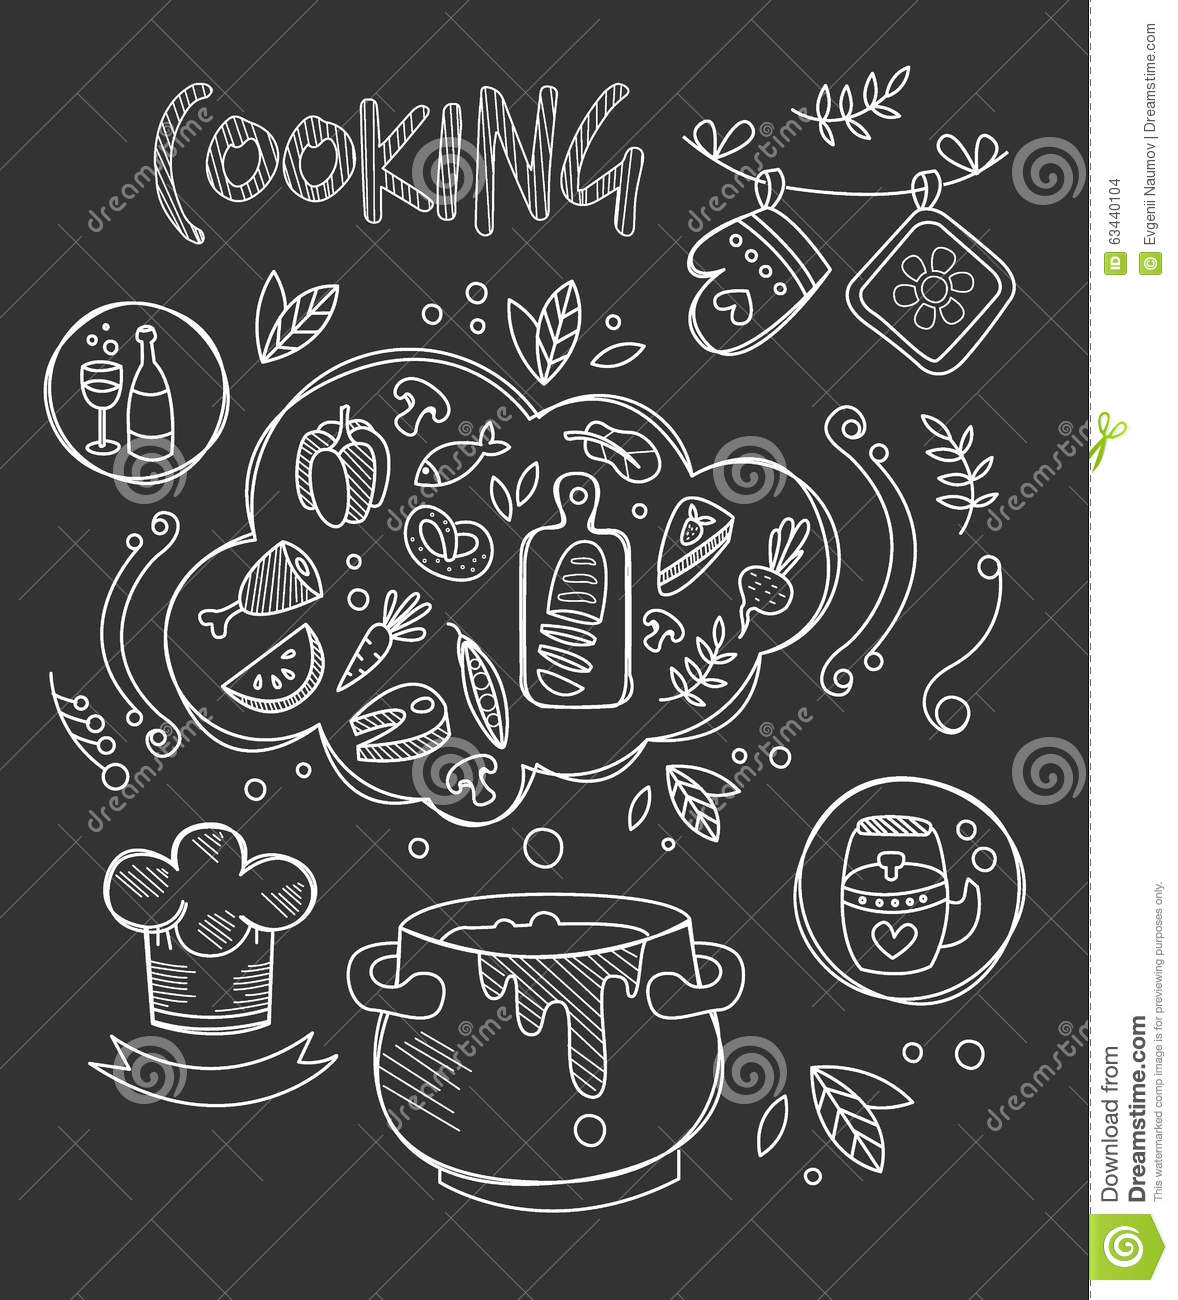 Cooking vector illustration chalkboard drawing stock for Kitchen set drawing